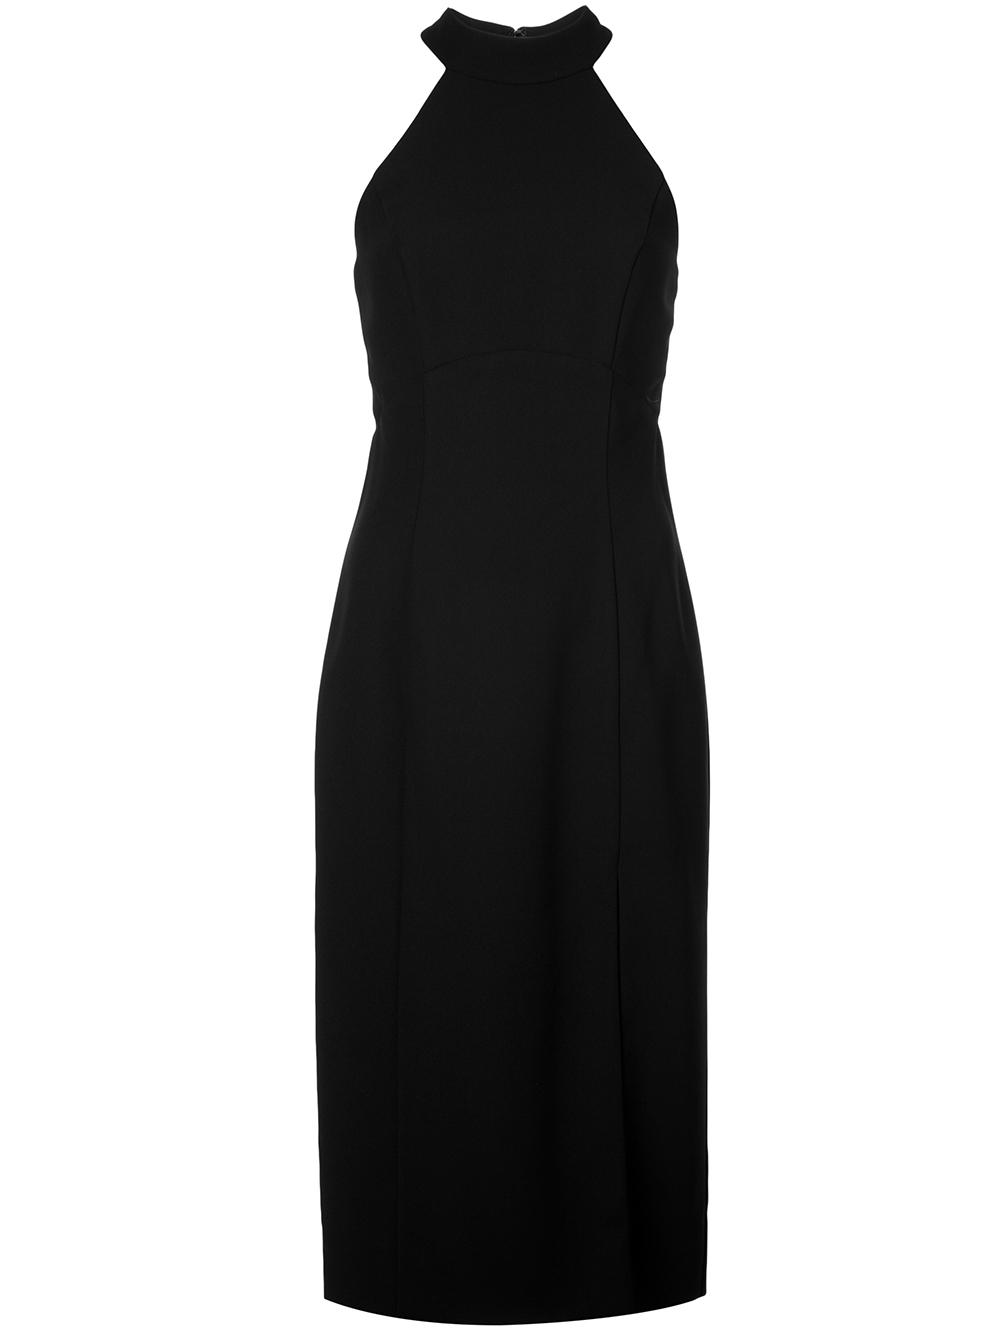 Crepe Halter Neckline Sheath Dress